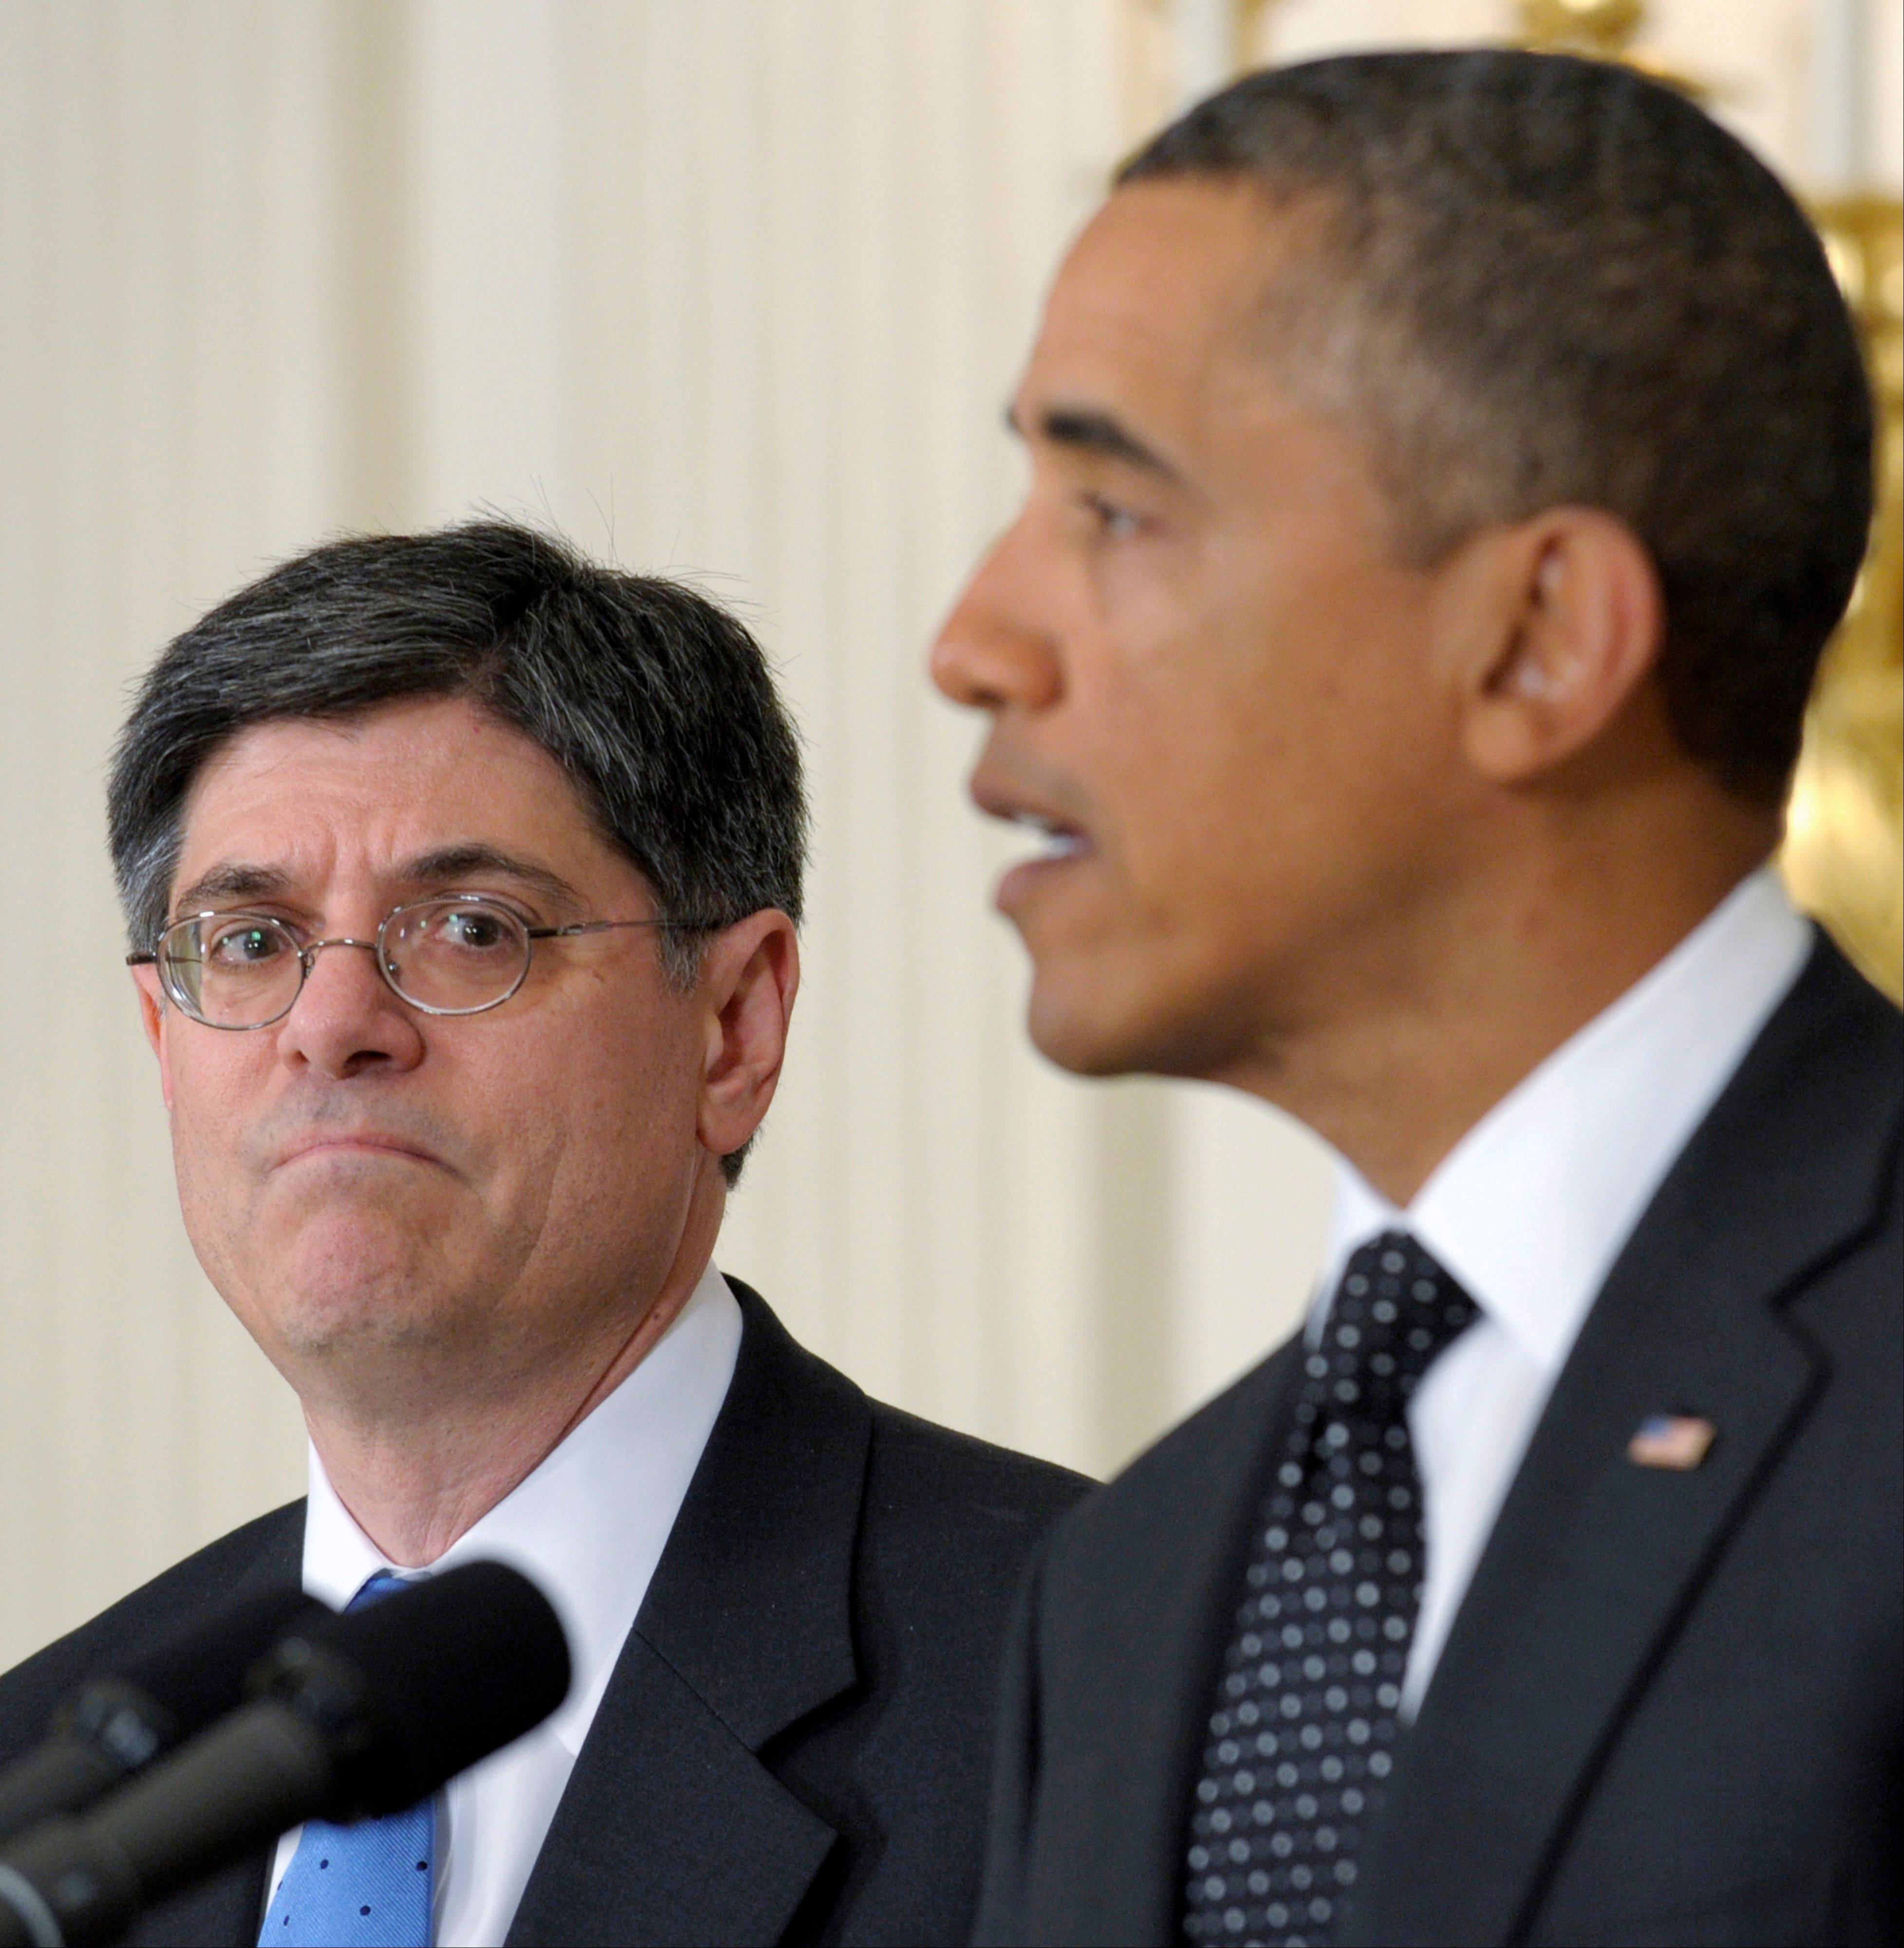 Jack Lew, current White House chief of staff, is President Barack Obama's expected pick to lead the Treasury Department, with an announcement possible before the end of the week.